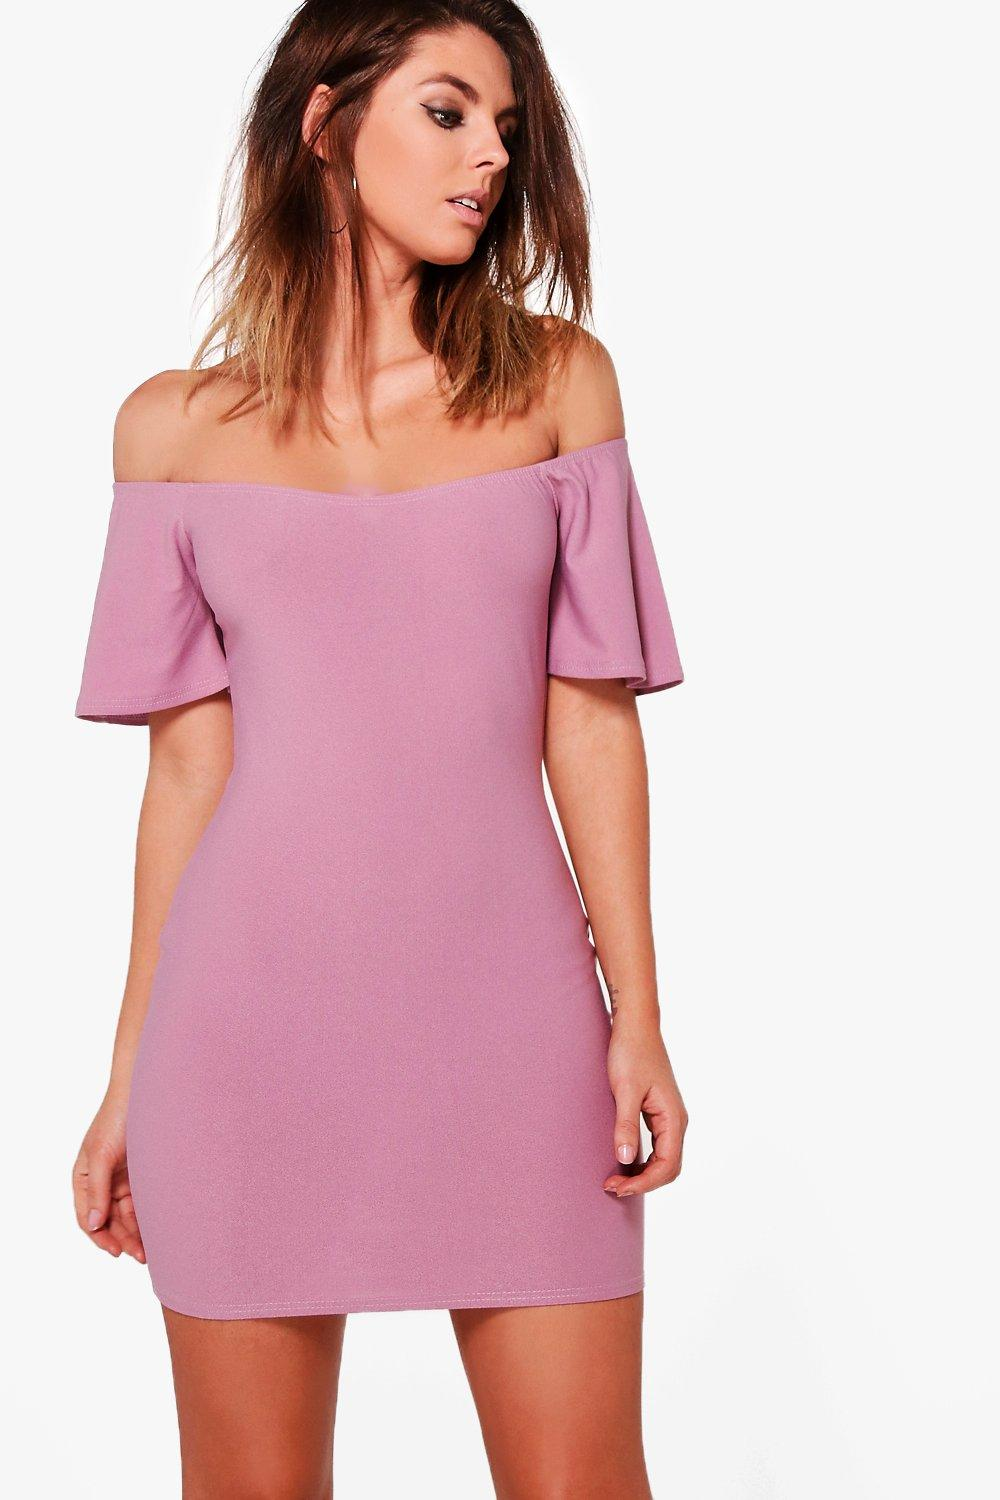 ada1de687d8e Womens Lilas Off Shoulder Frill Bodycon Dress. Hover to zoom